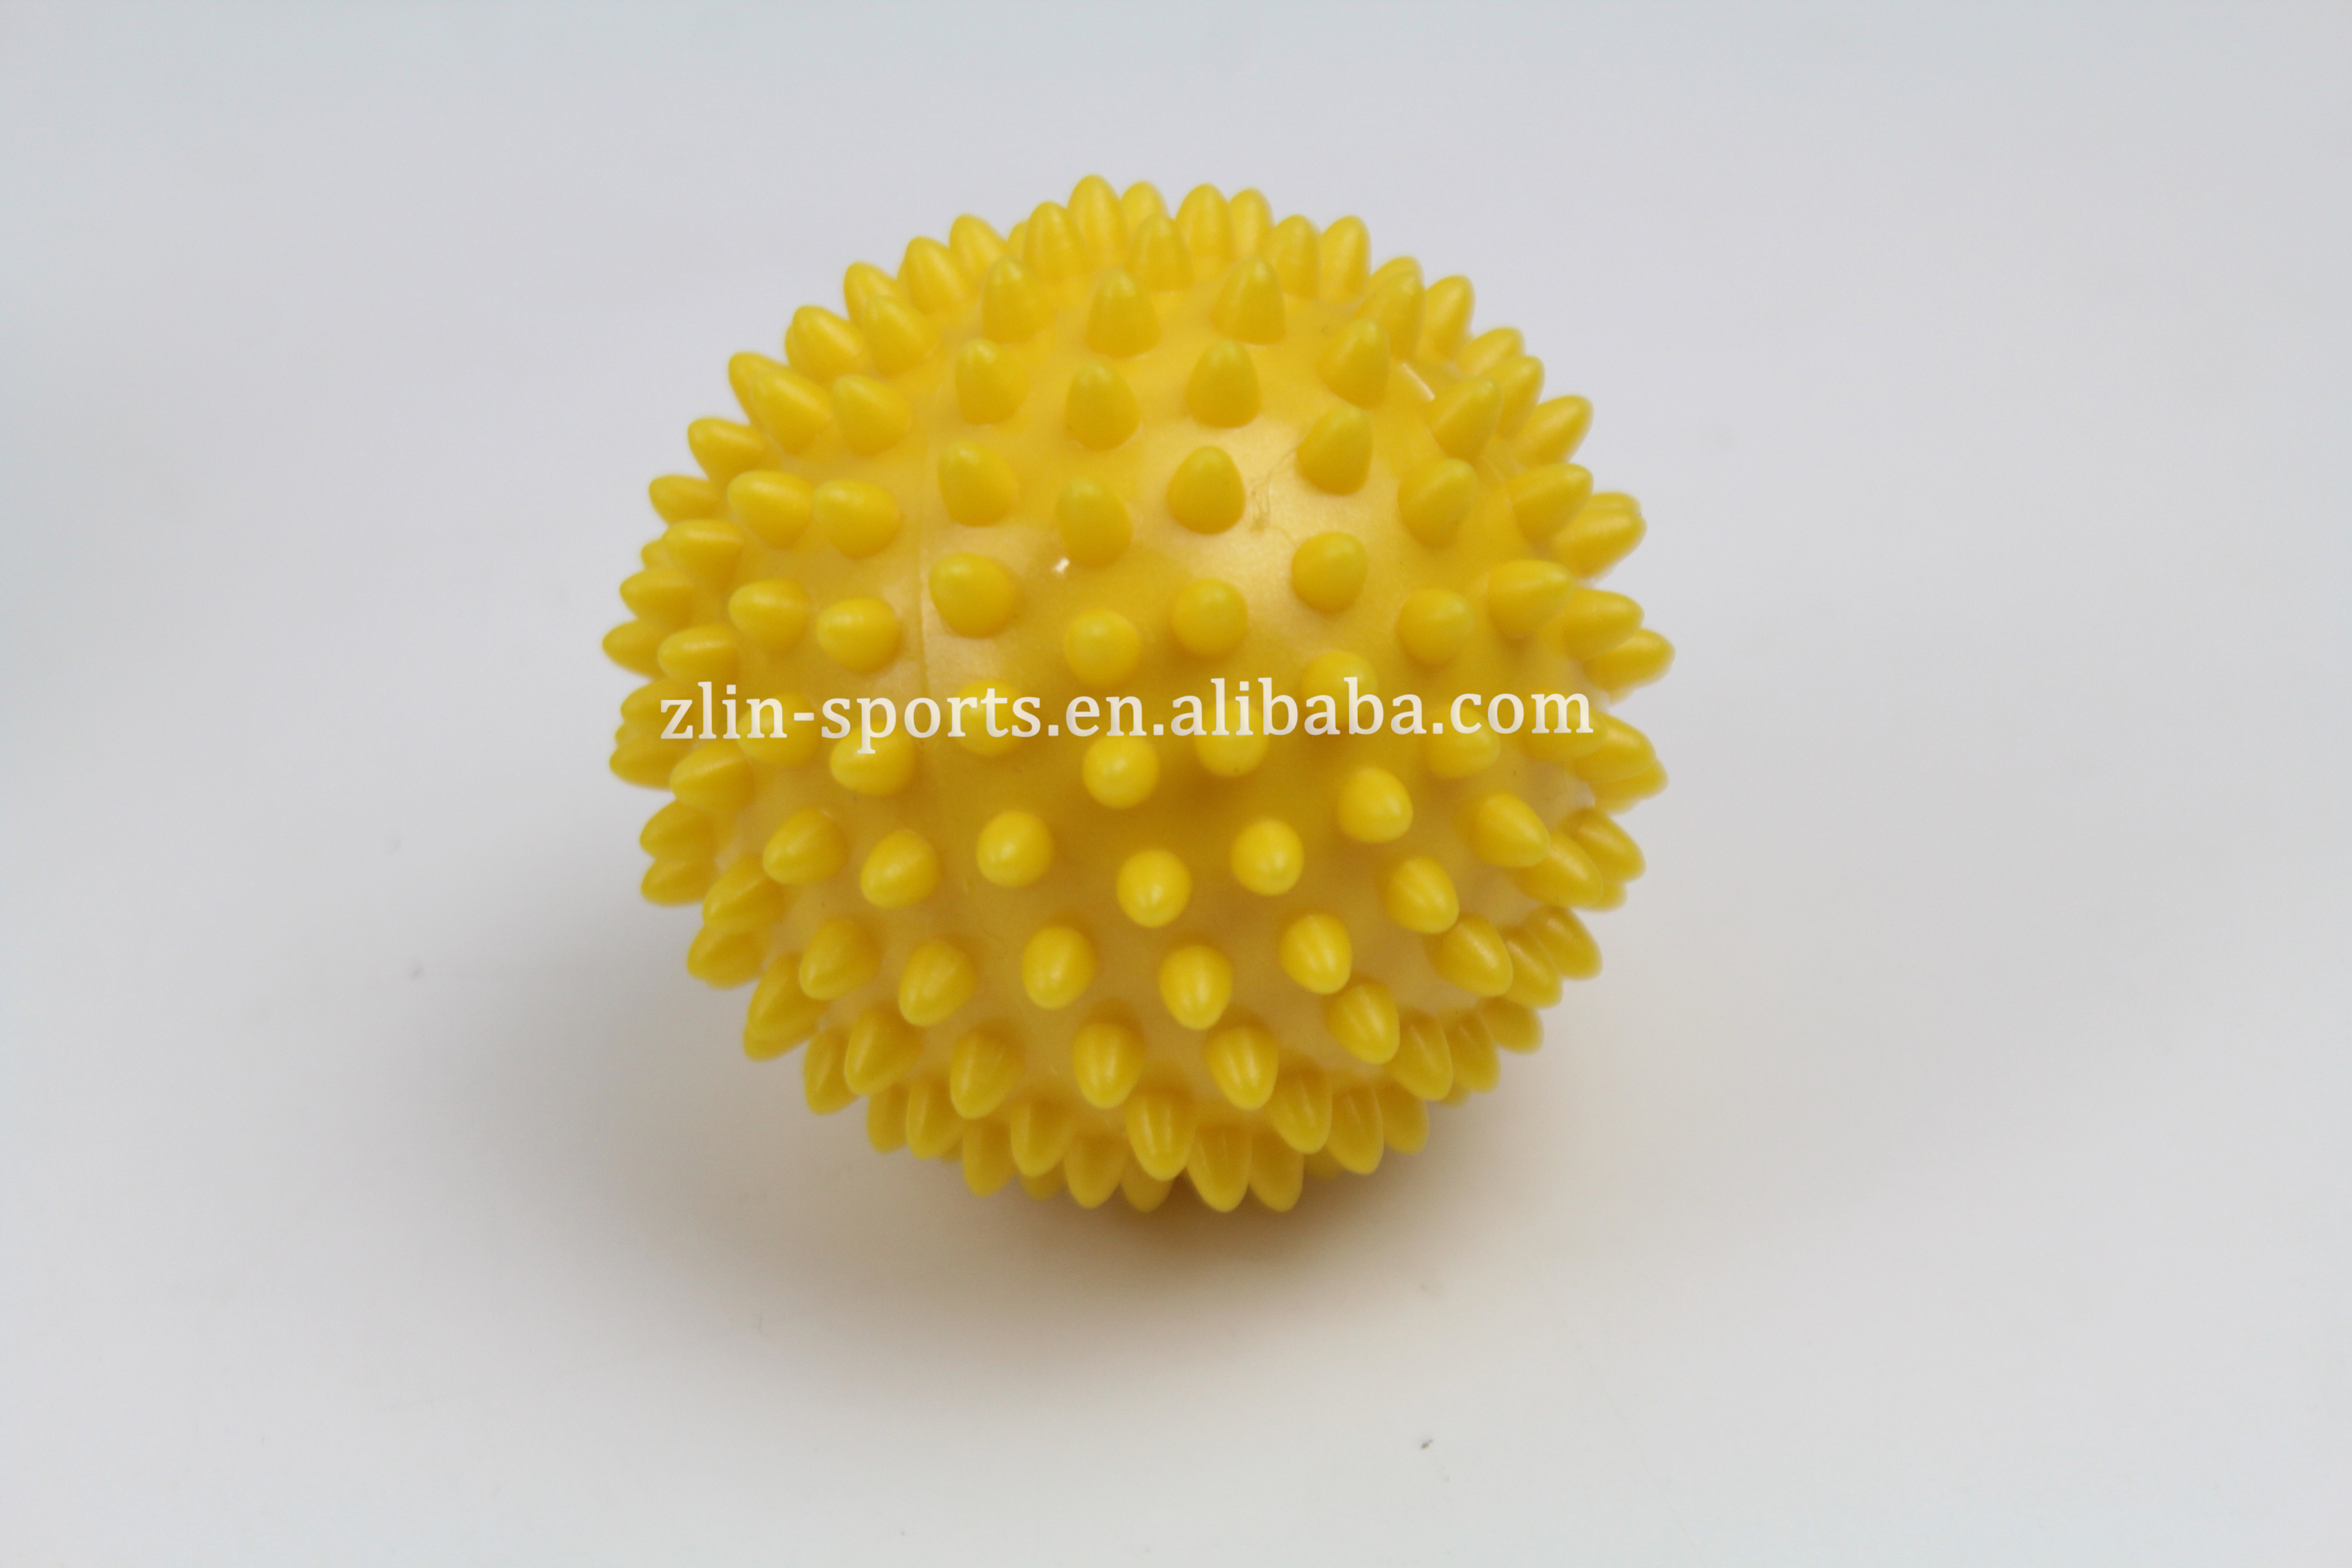 China direct sale 8 axis 5kg Manual Fitness massage ball